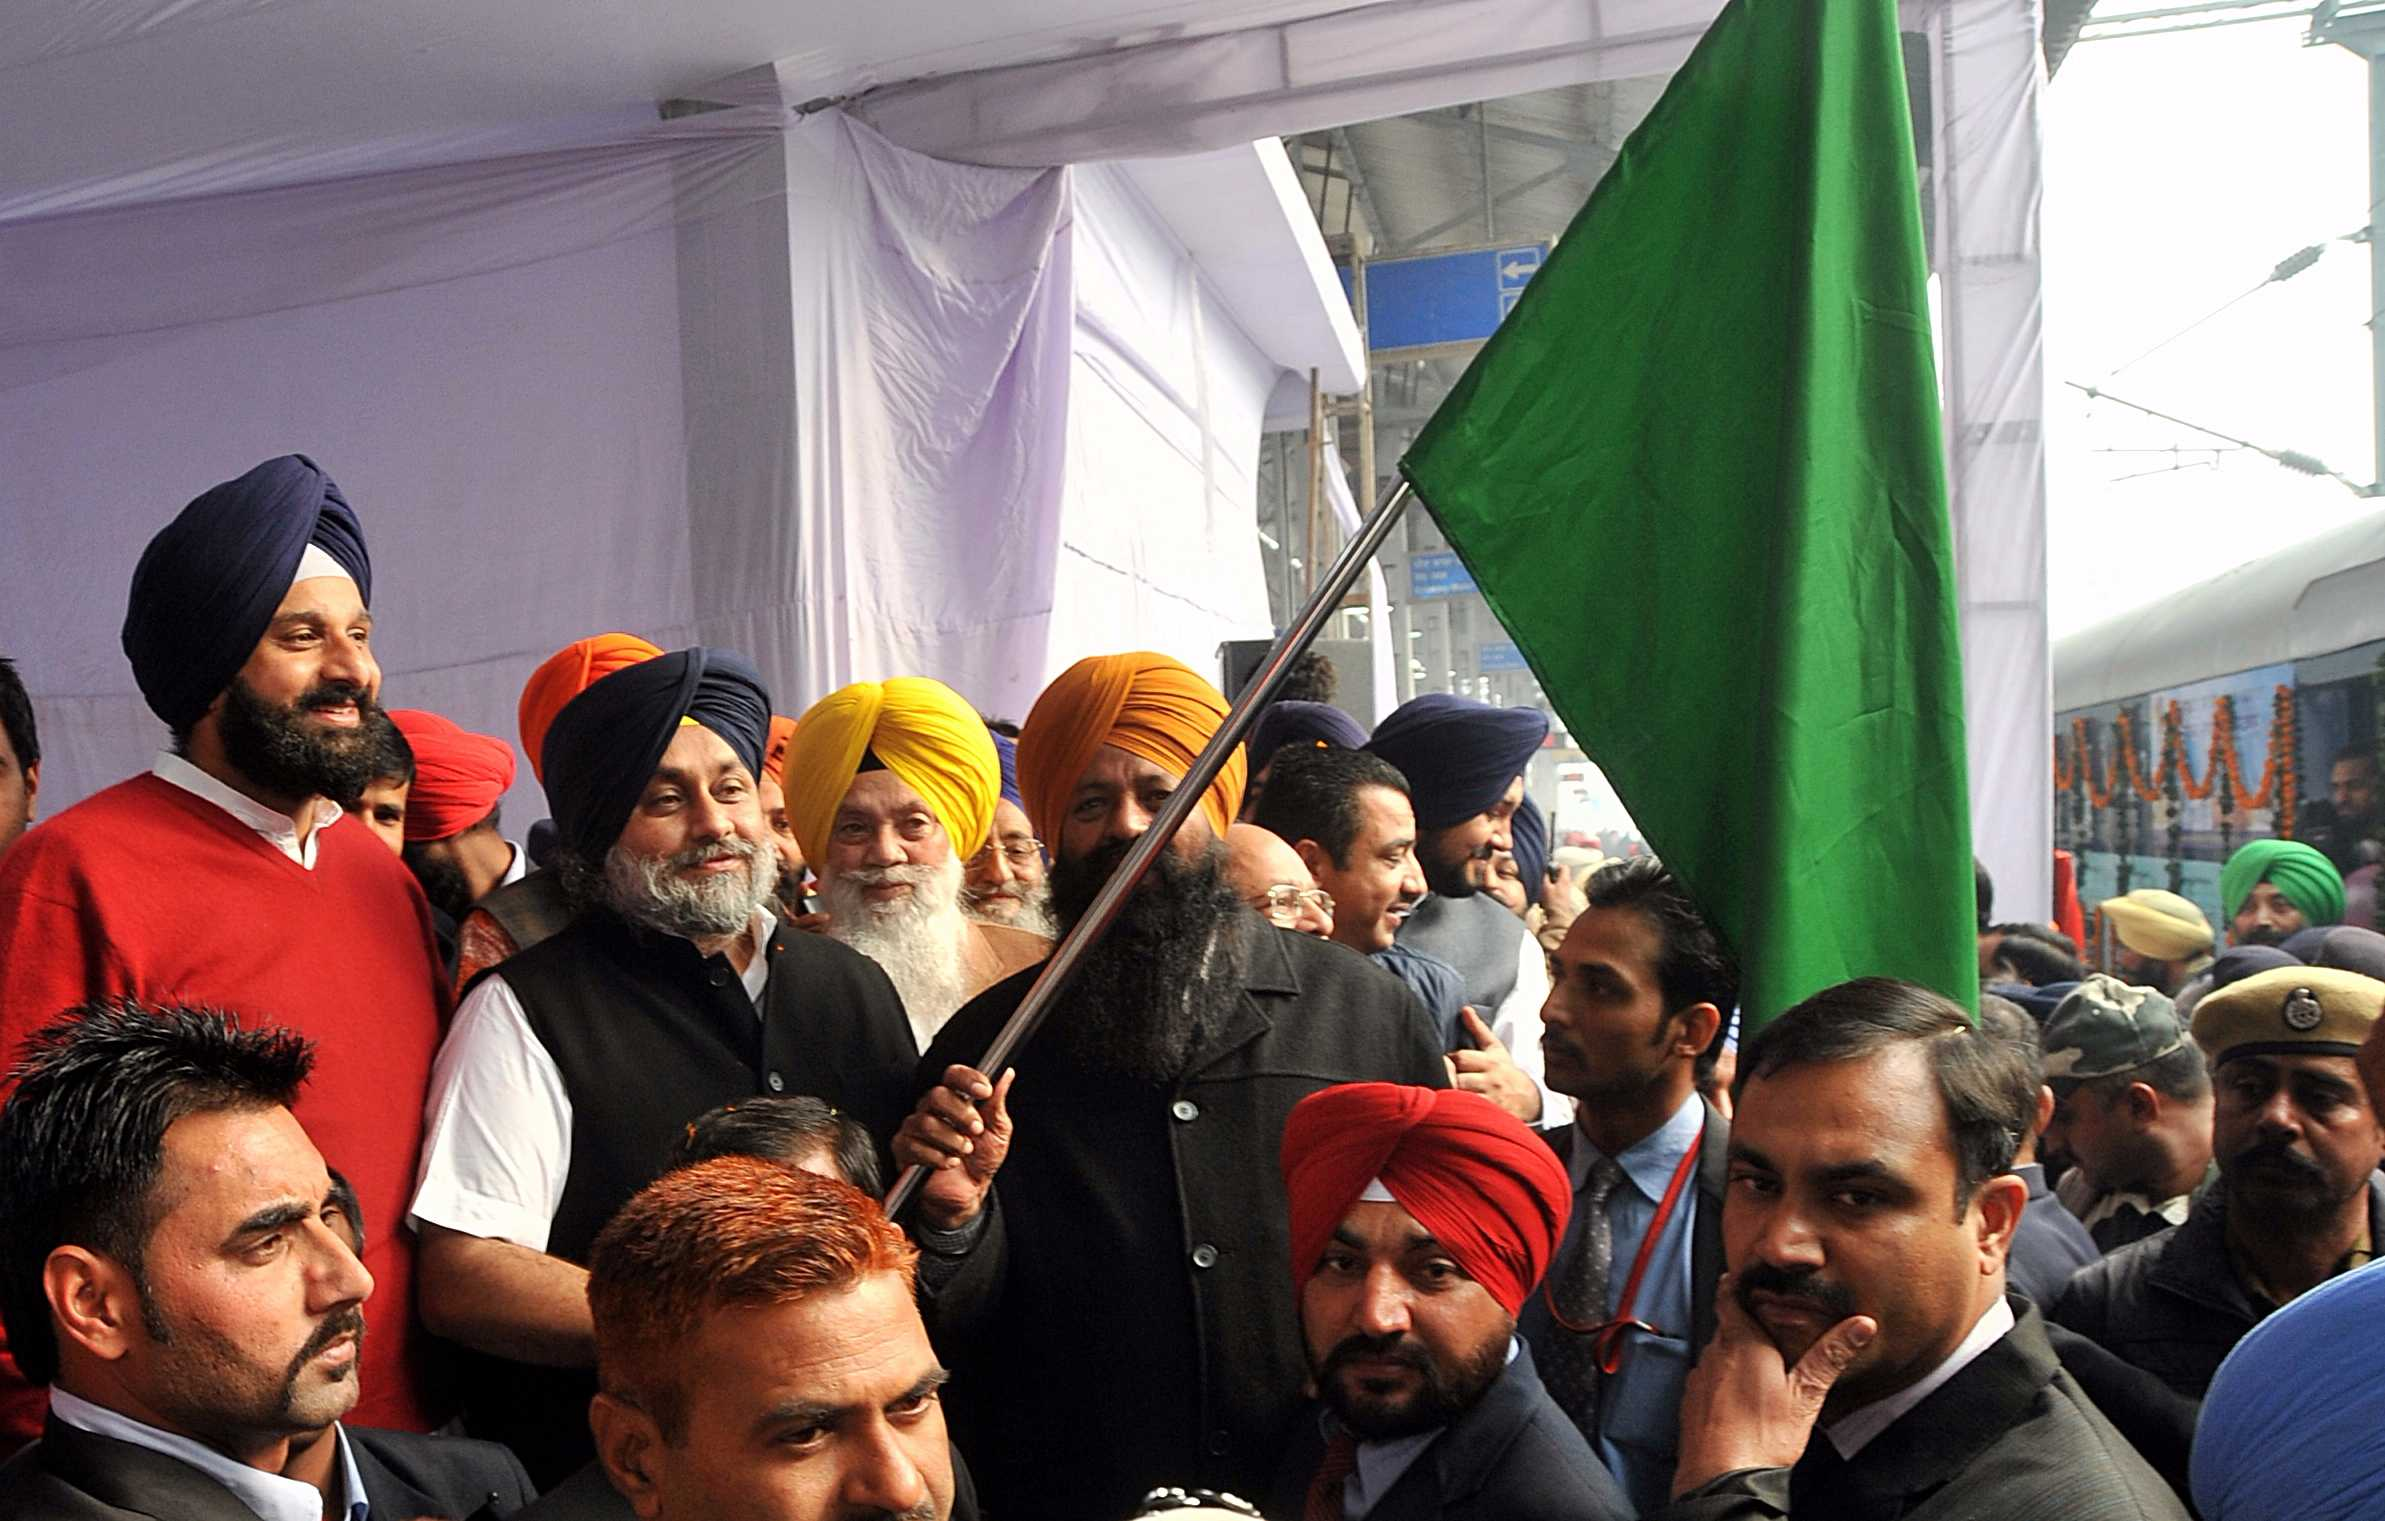 Punjab Deputy Chief Minister Mr. Sukhbir Singh Badal flagging off Special Train from Amritsar to Nanded Sahib on Friday.